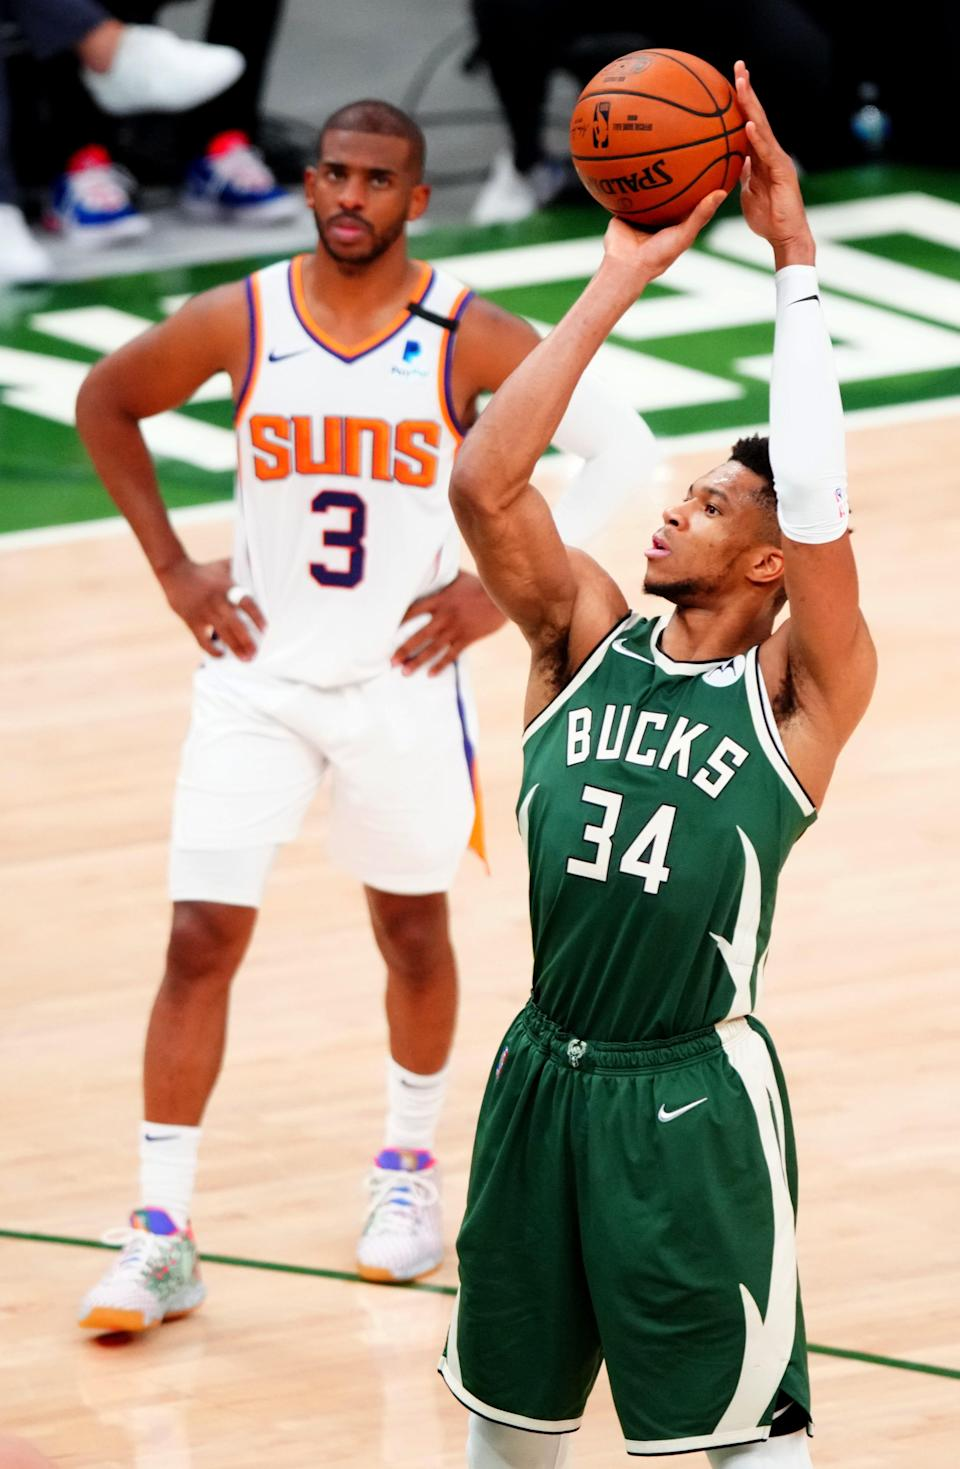 Giannis Antetokounmpo (34) shot 17 free throws in Game 3 while the Suns shot 16 as a team.